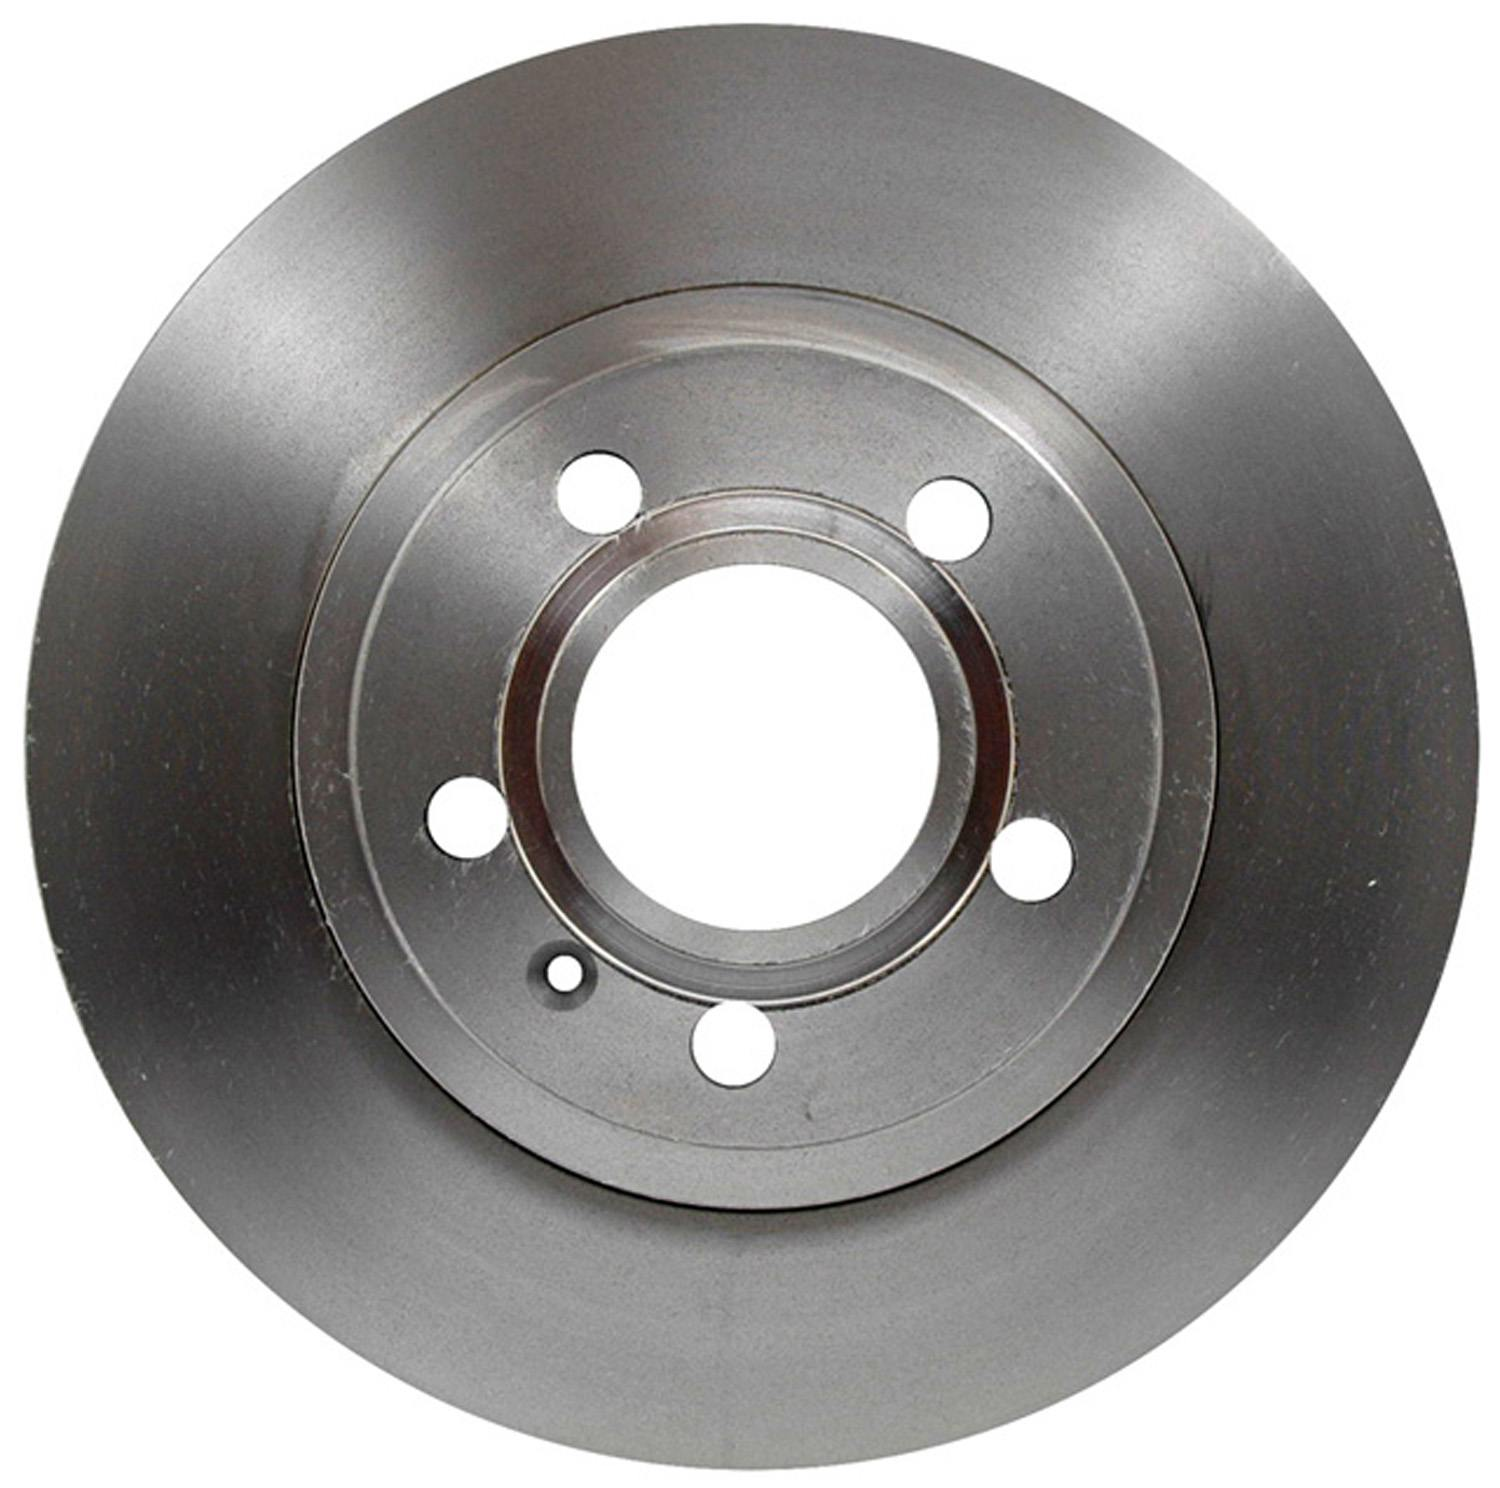 ACDELCO PROFESSIONAL BRAKES - Disc Brake Rotor - ADU 18A2403